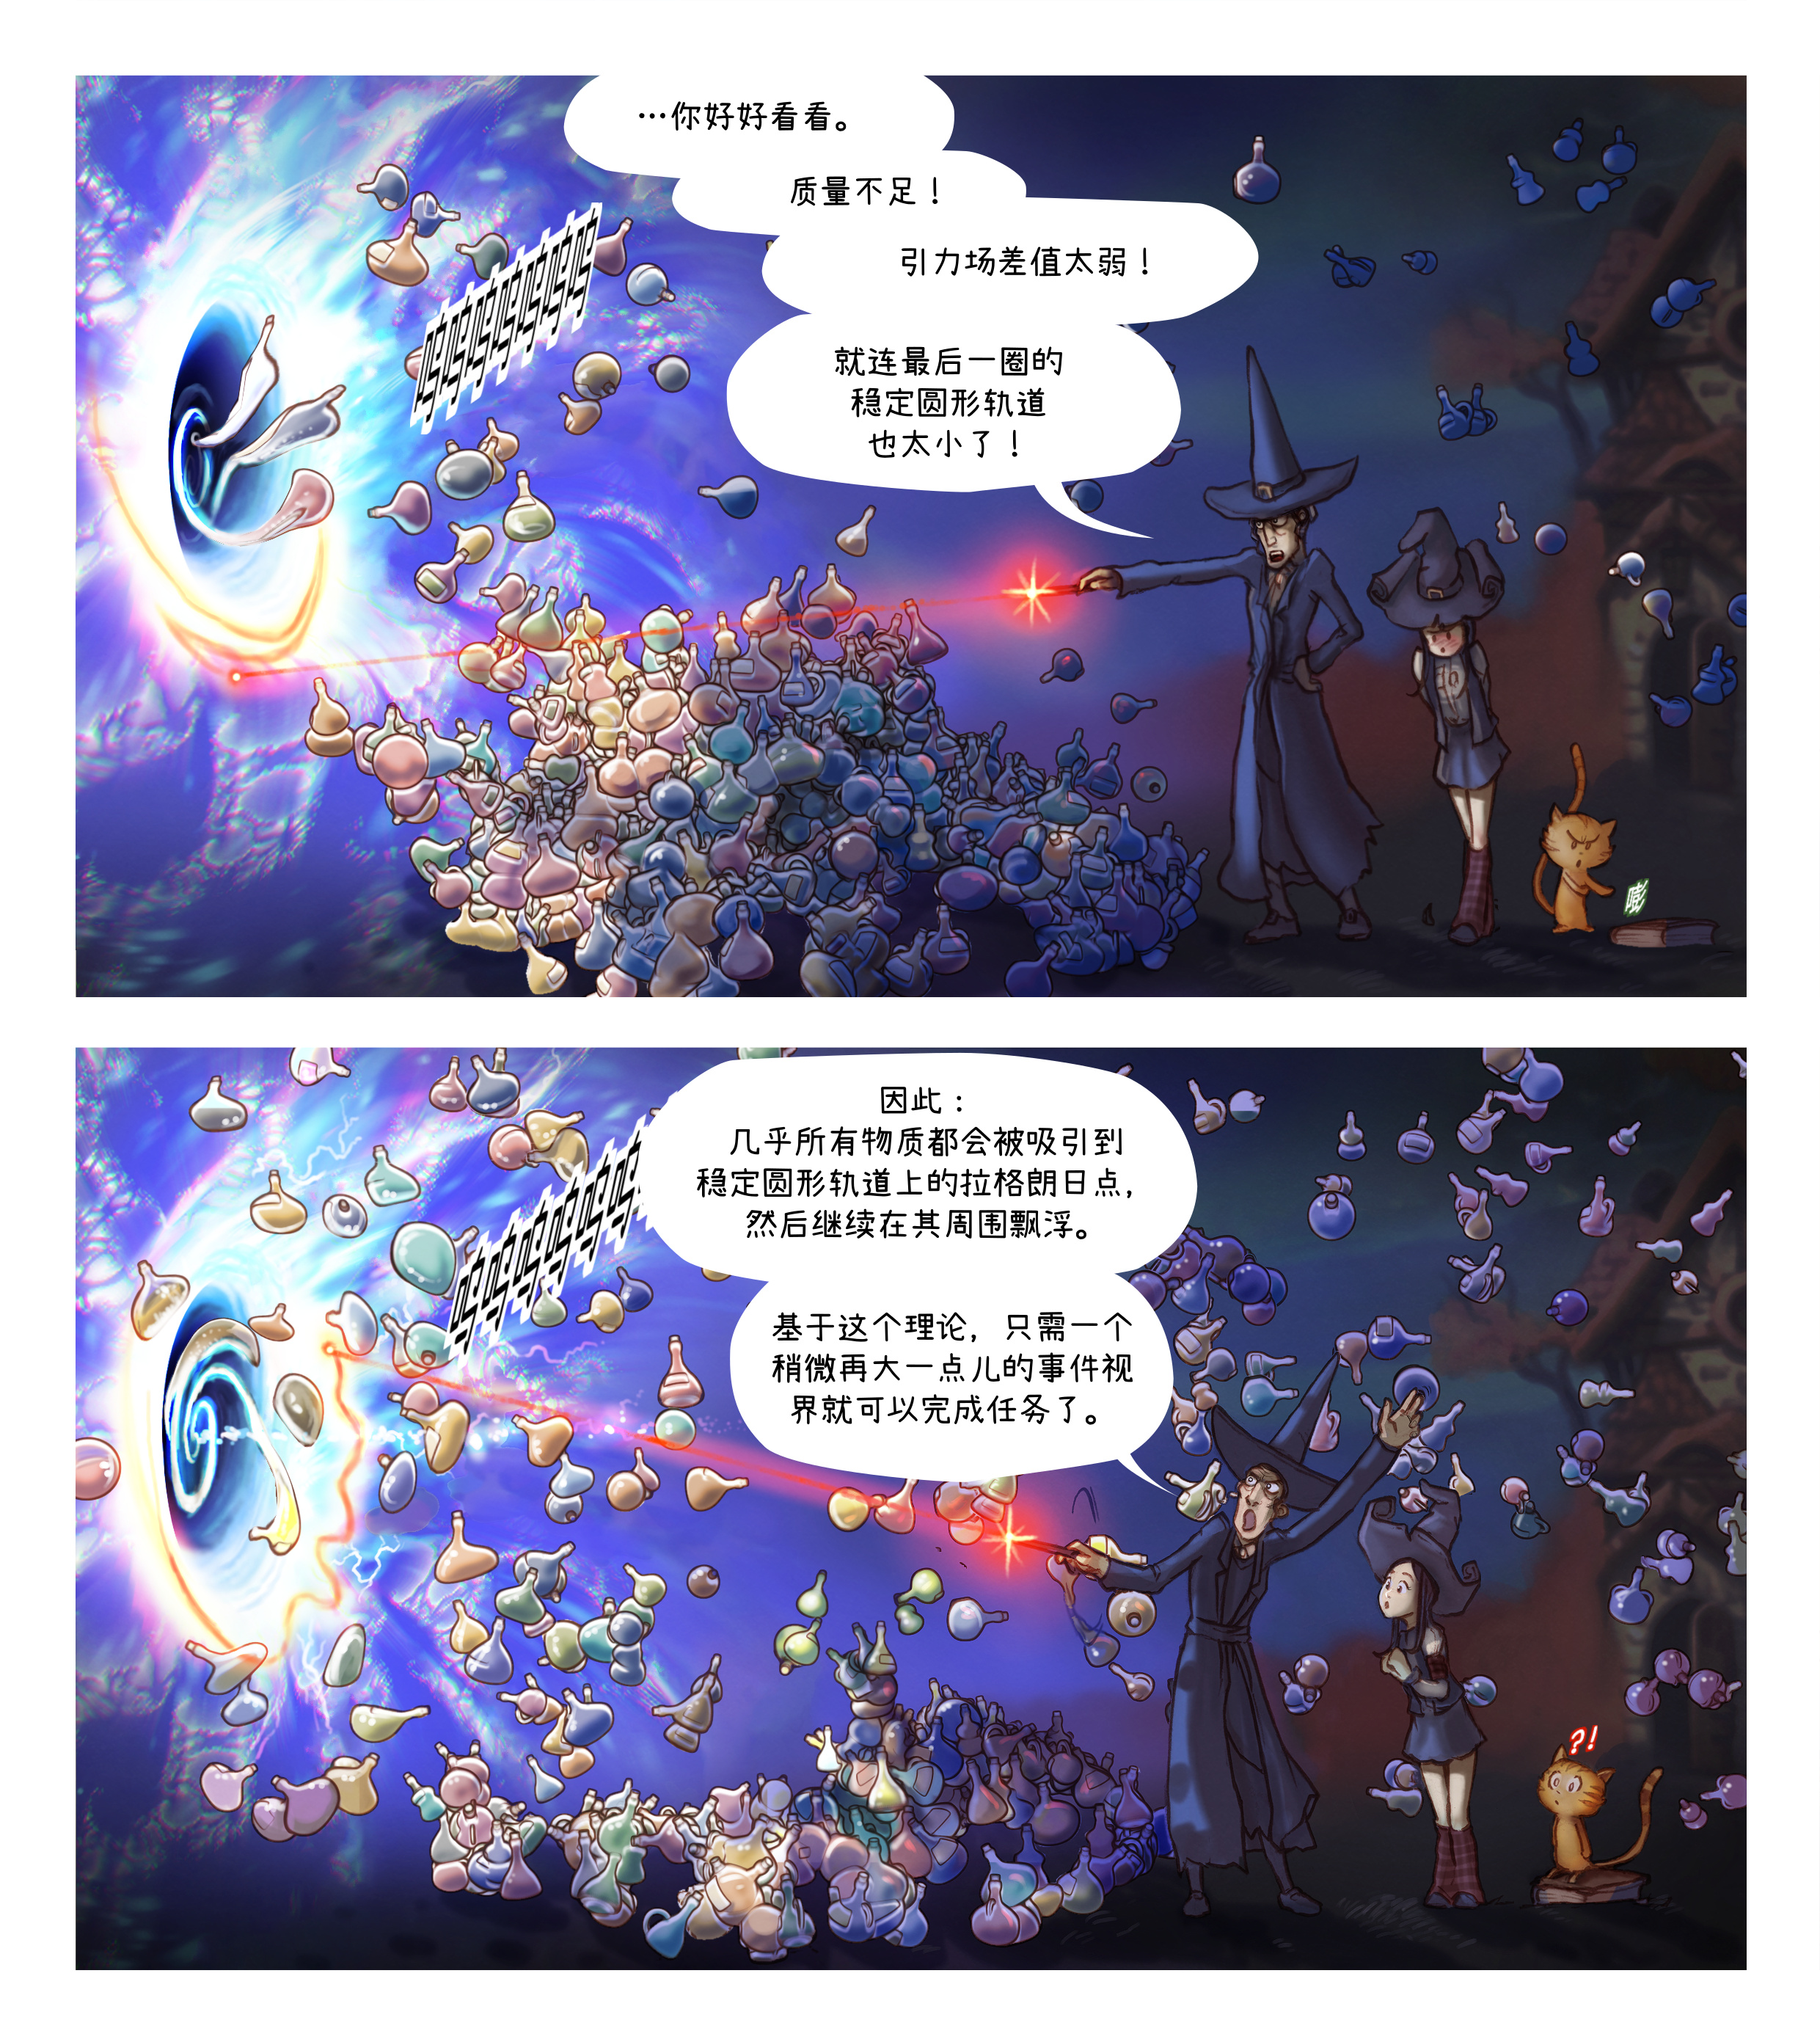 A webcomic page of Pepper&Carrot, 漫画全集 12 [cn], 页面 5